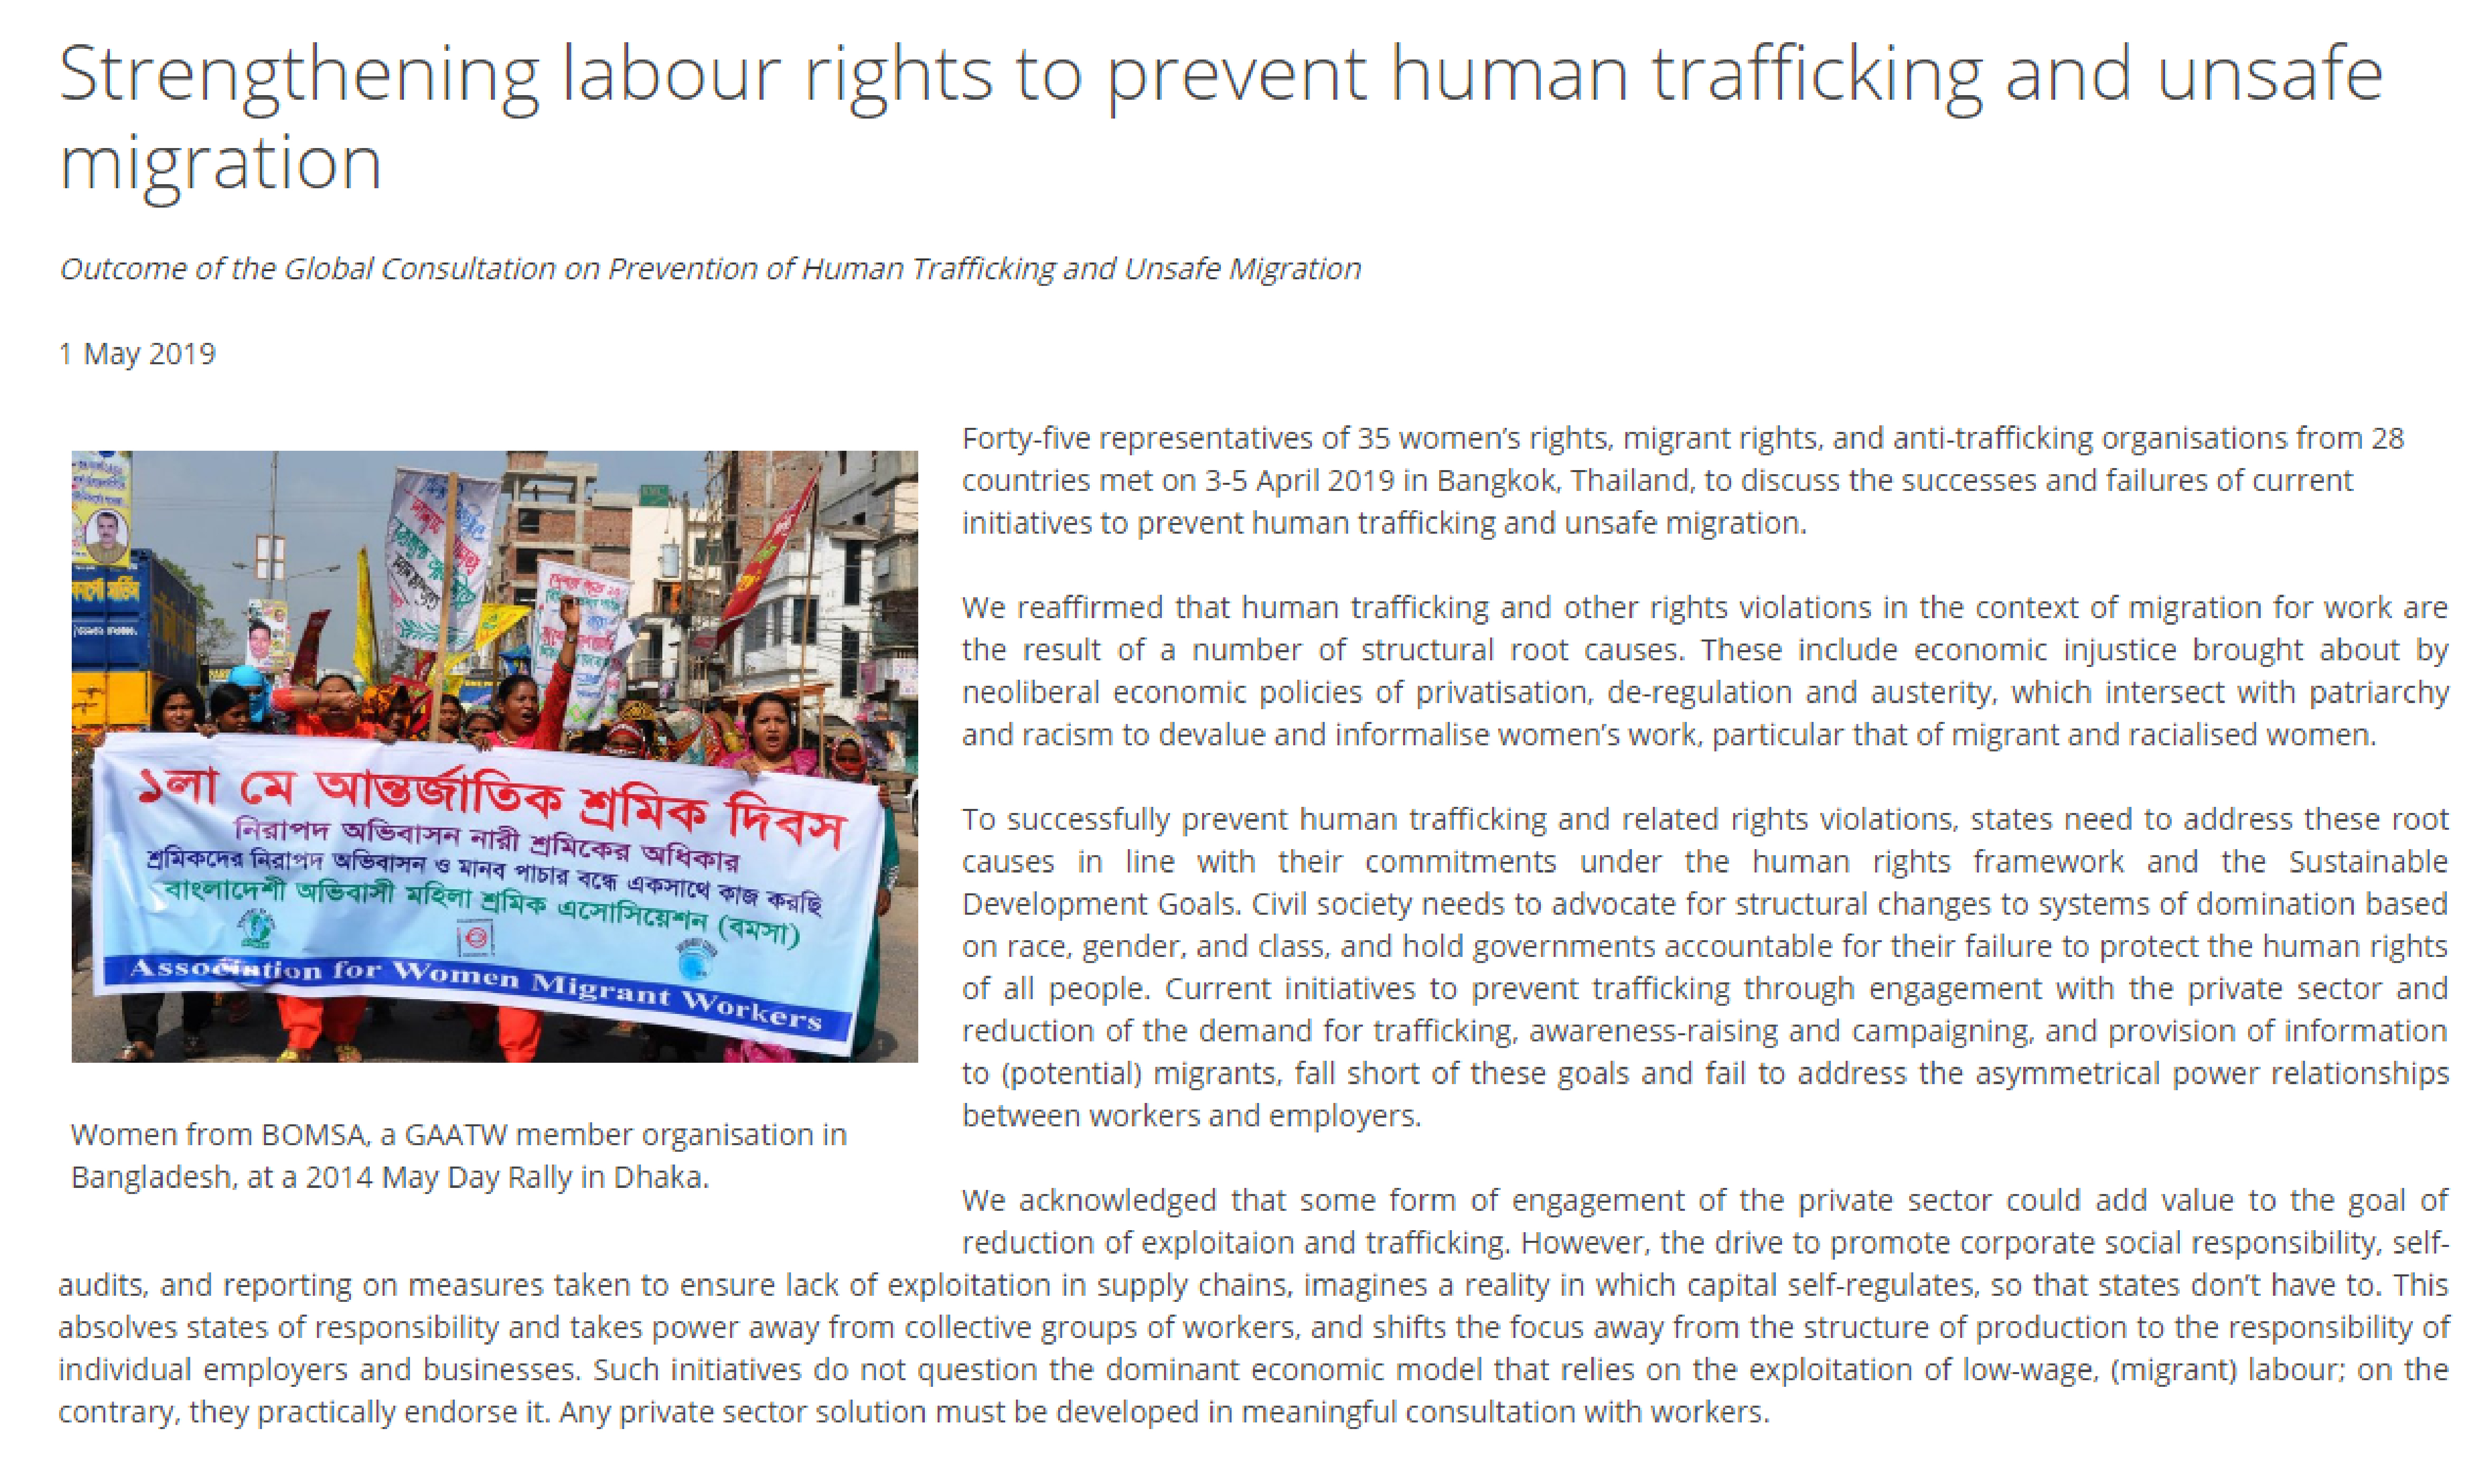 Strengthening labour rights to prevent human trafficking and unsafe migration